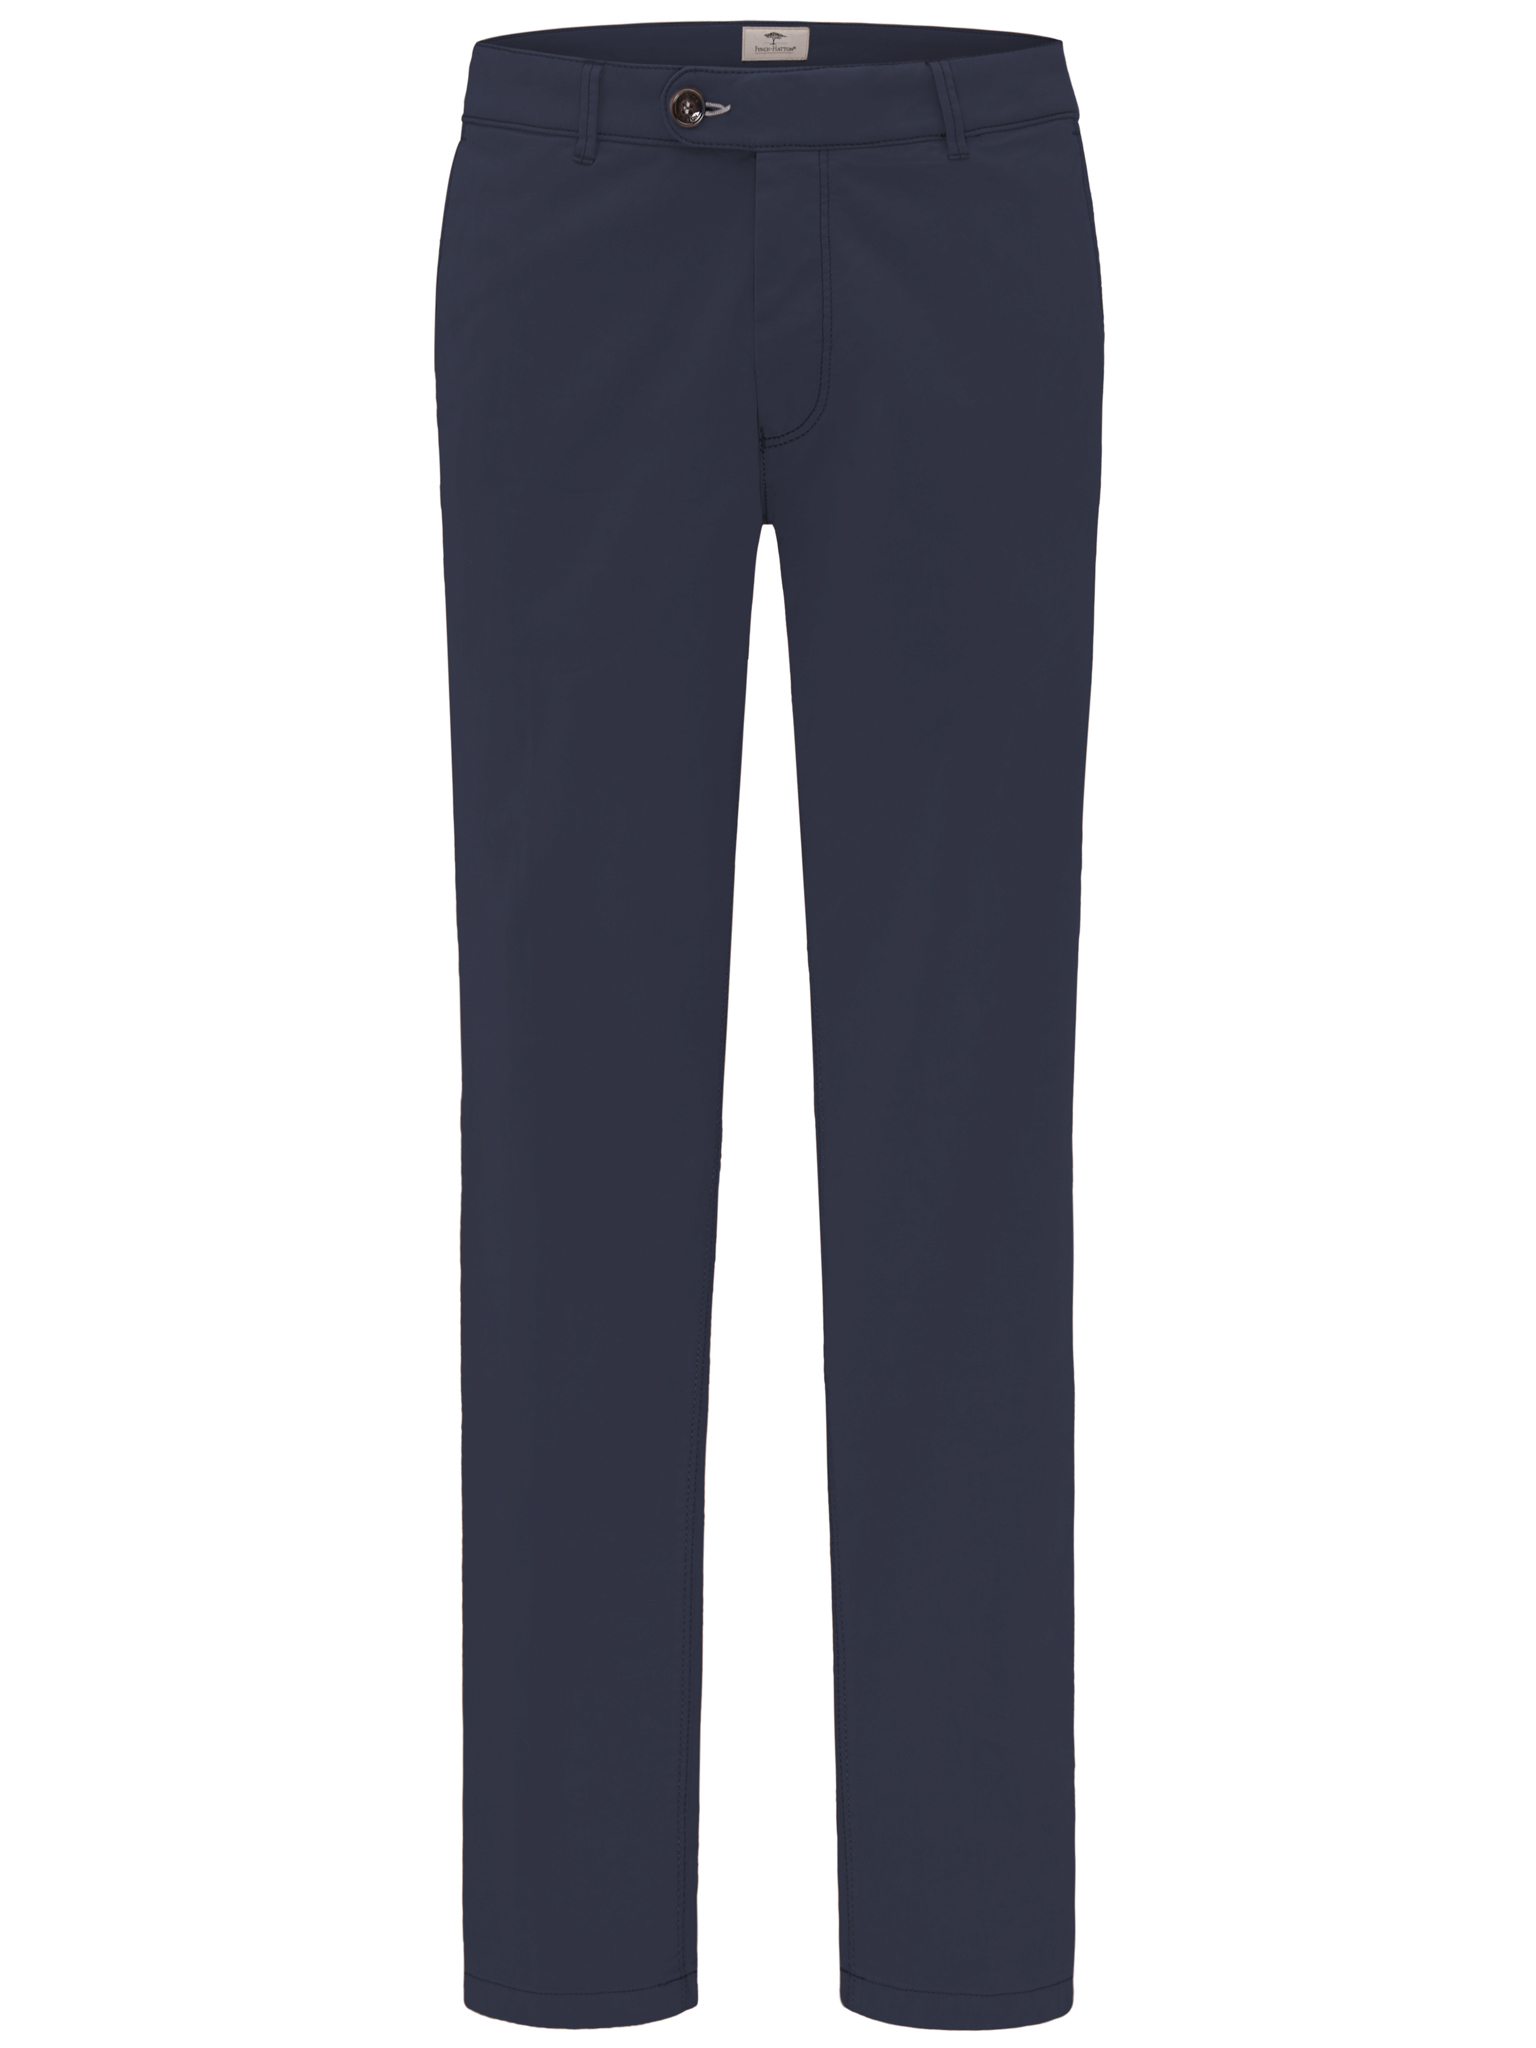 Fynch Hatton Togo summer trousers in navy